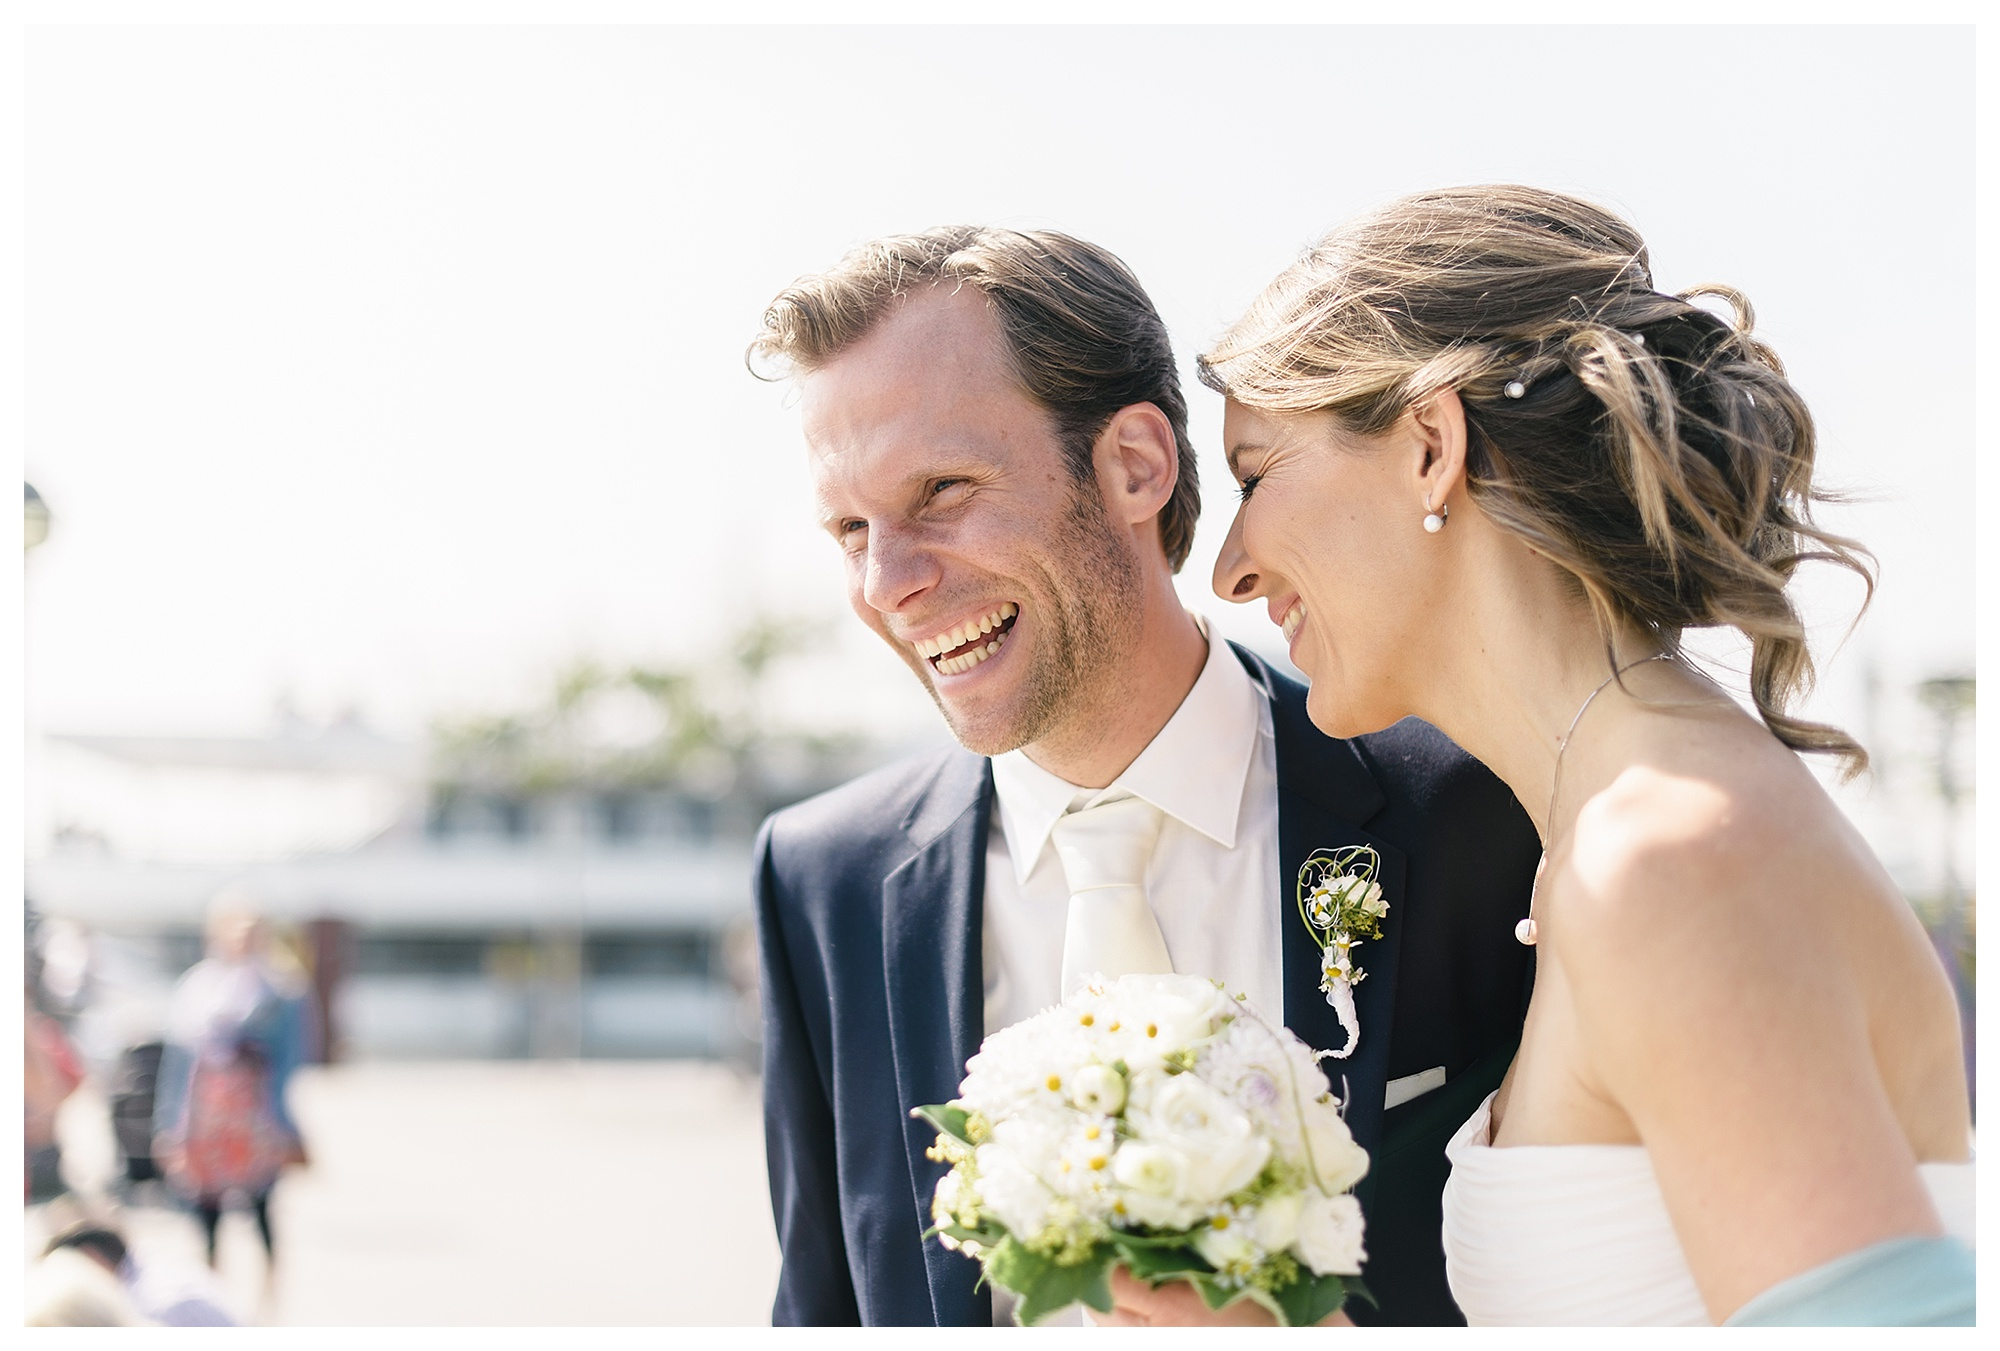 Fotograf Konstanz - Hochzeitsreportage Konstanz Raphael Nicole Elmar Feuerbacher Photography Hochzeit Portrait 19 - Wedding in Constance at Lake of Constance  - 55 -